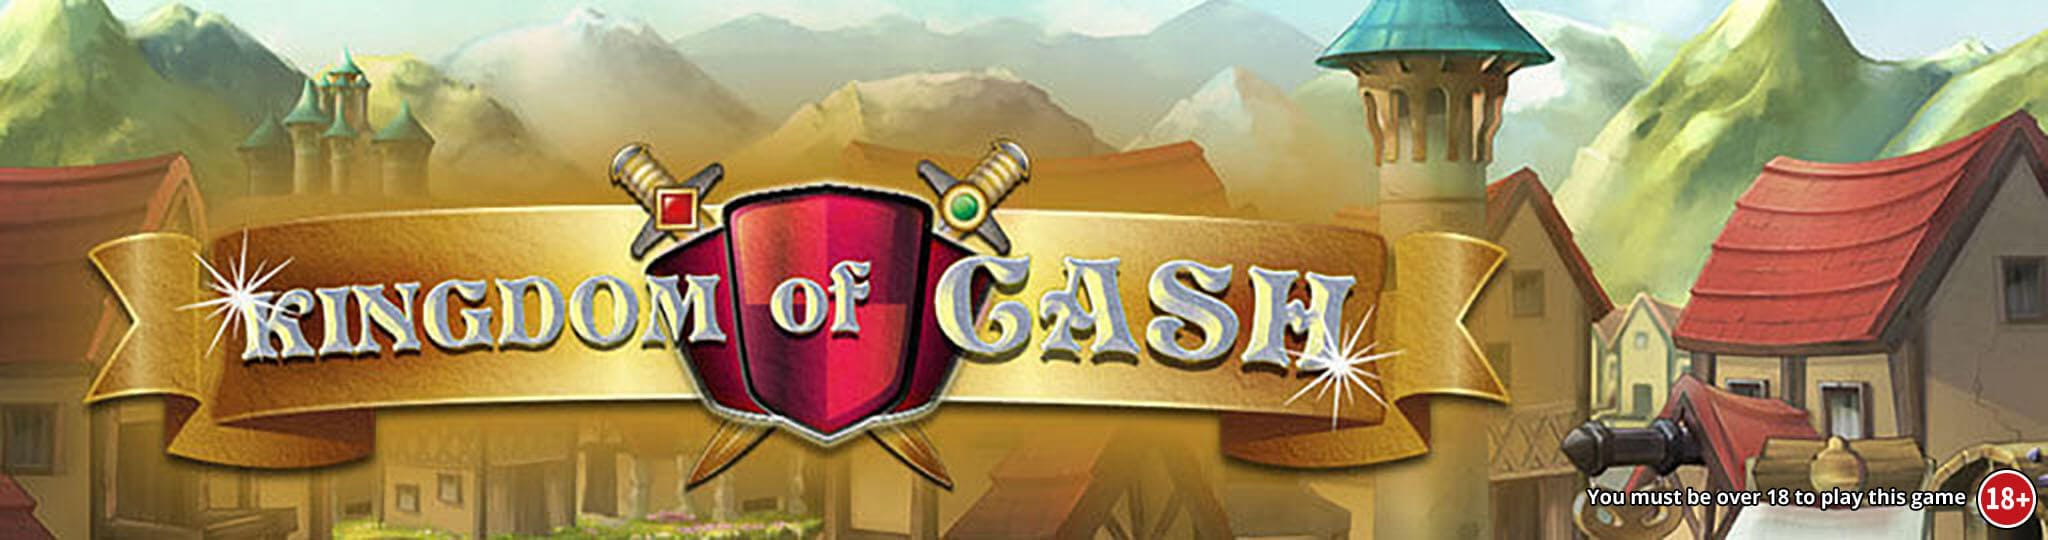 Kingdom of Cash Review